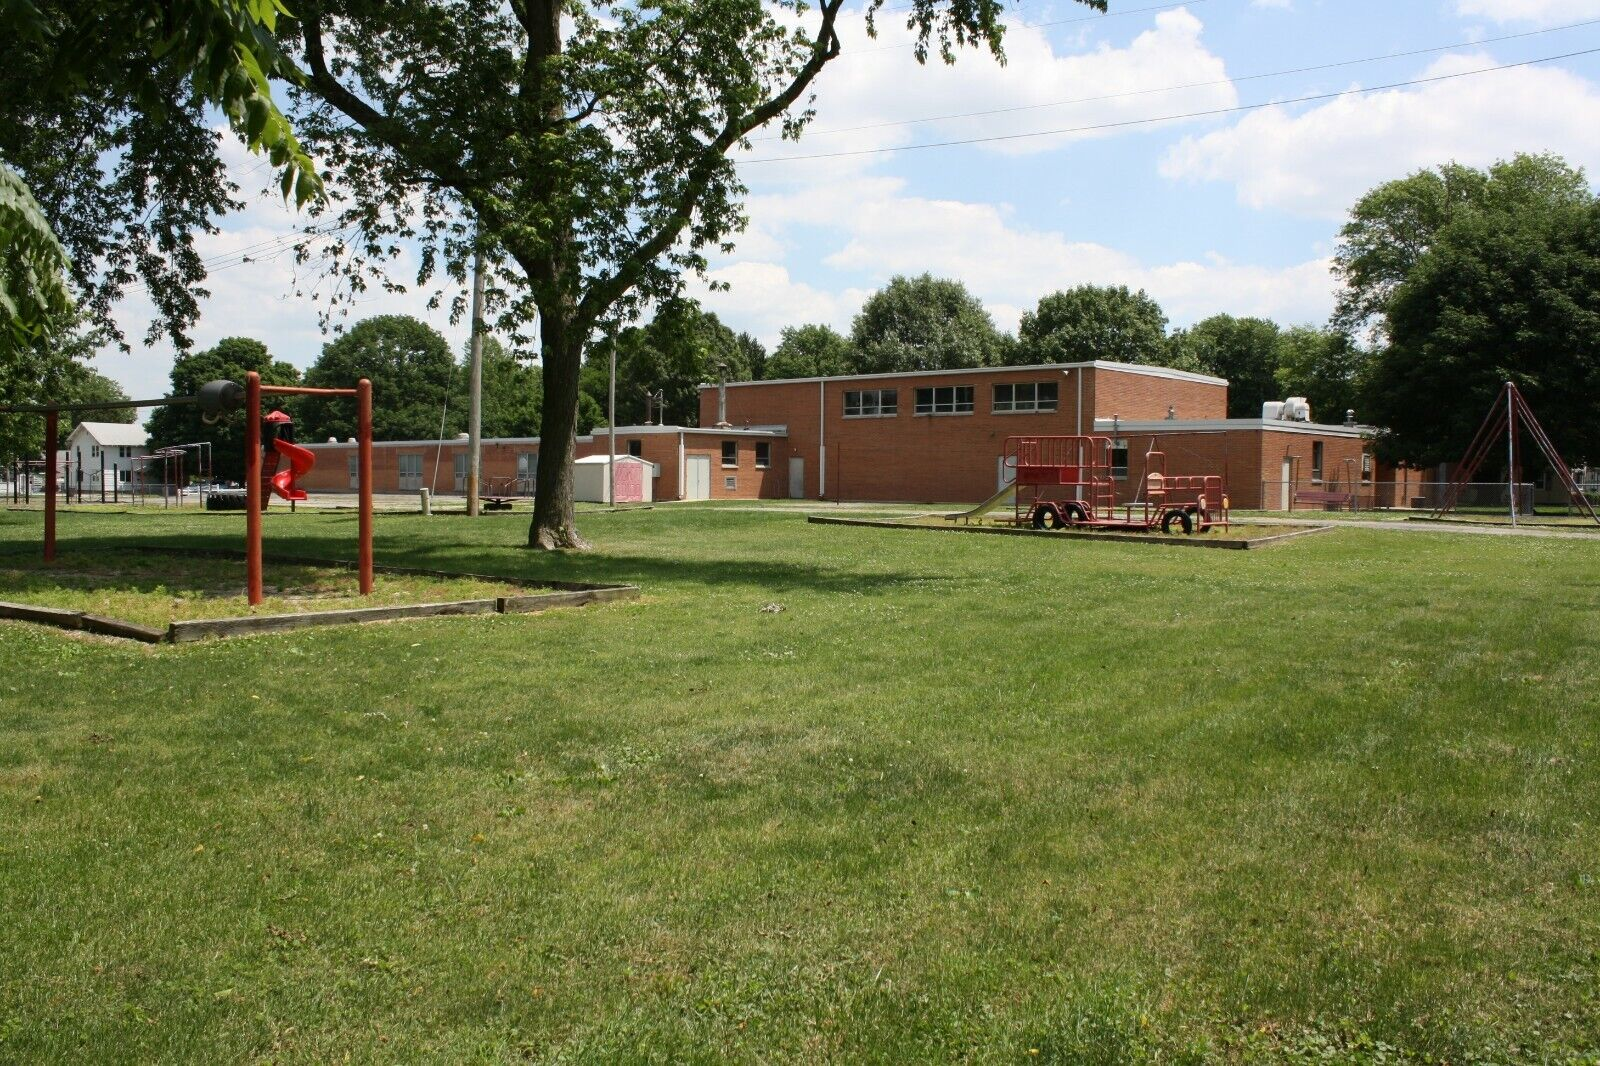 NICE ILLINOIS SCHOOL,HOME,MANSION,HOUSE,STORAGE,REHAB FACILITY,CAFETERIA EQUIP  - $49,300.00